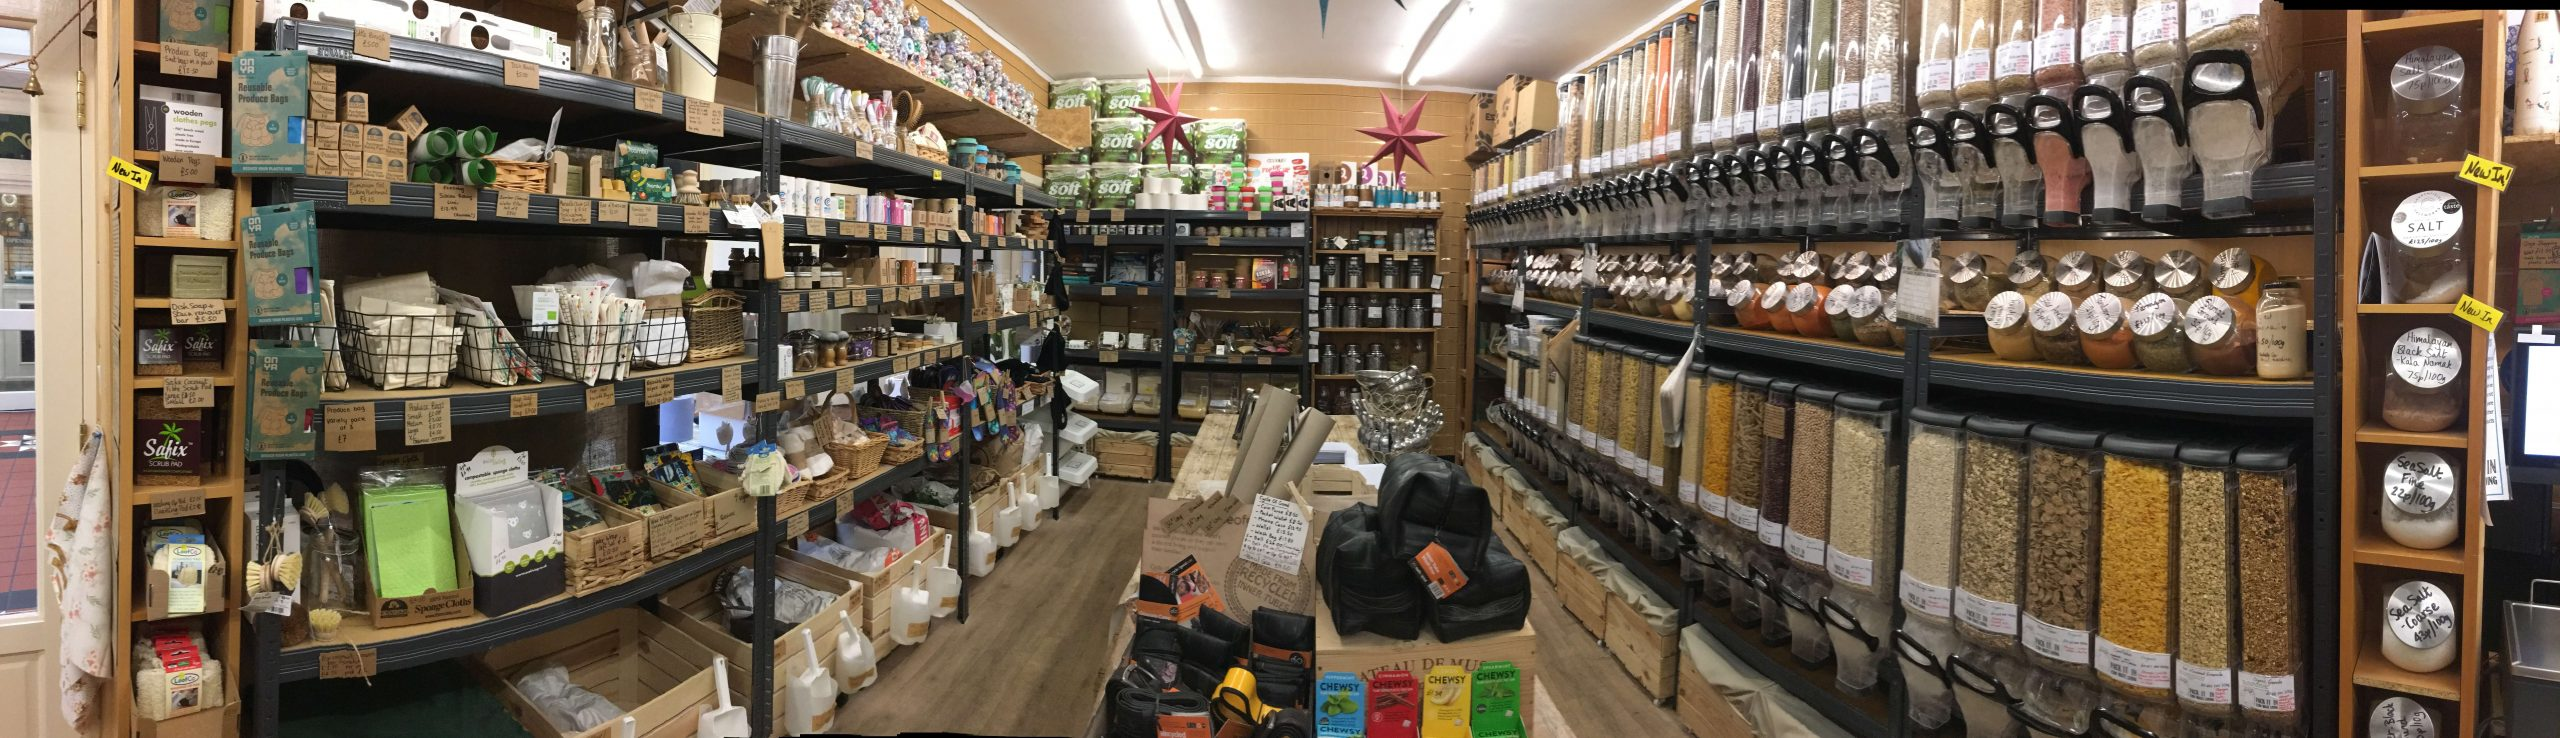 Pack It In Zero Waste Living main shop